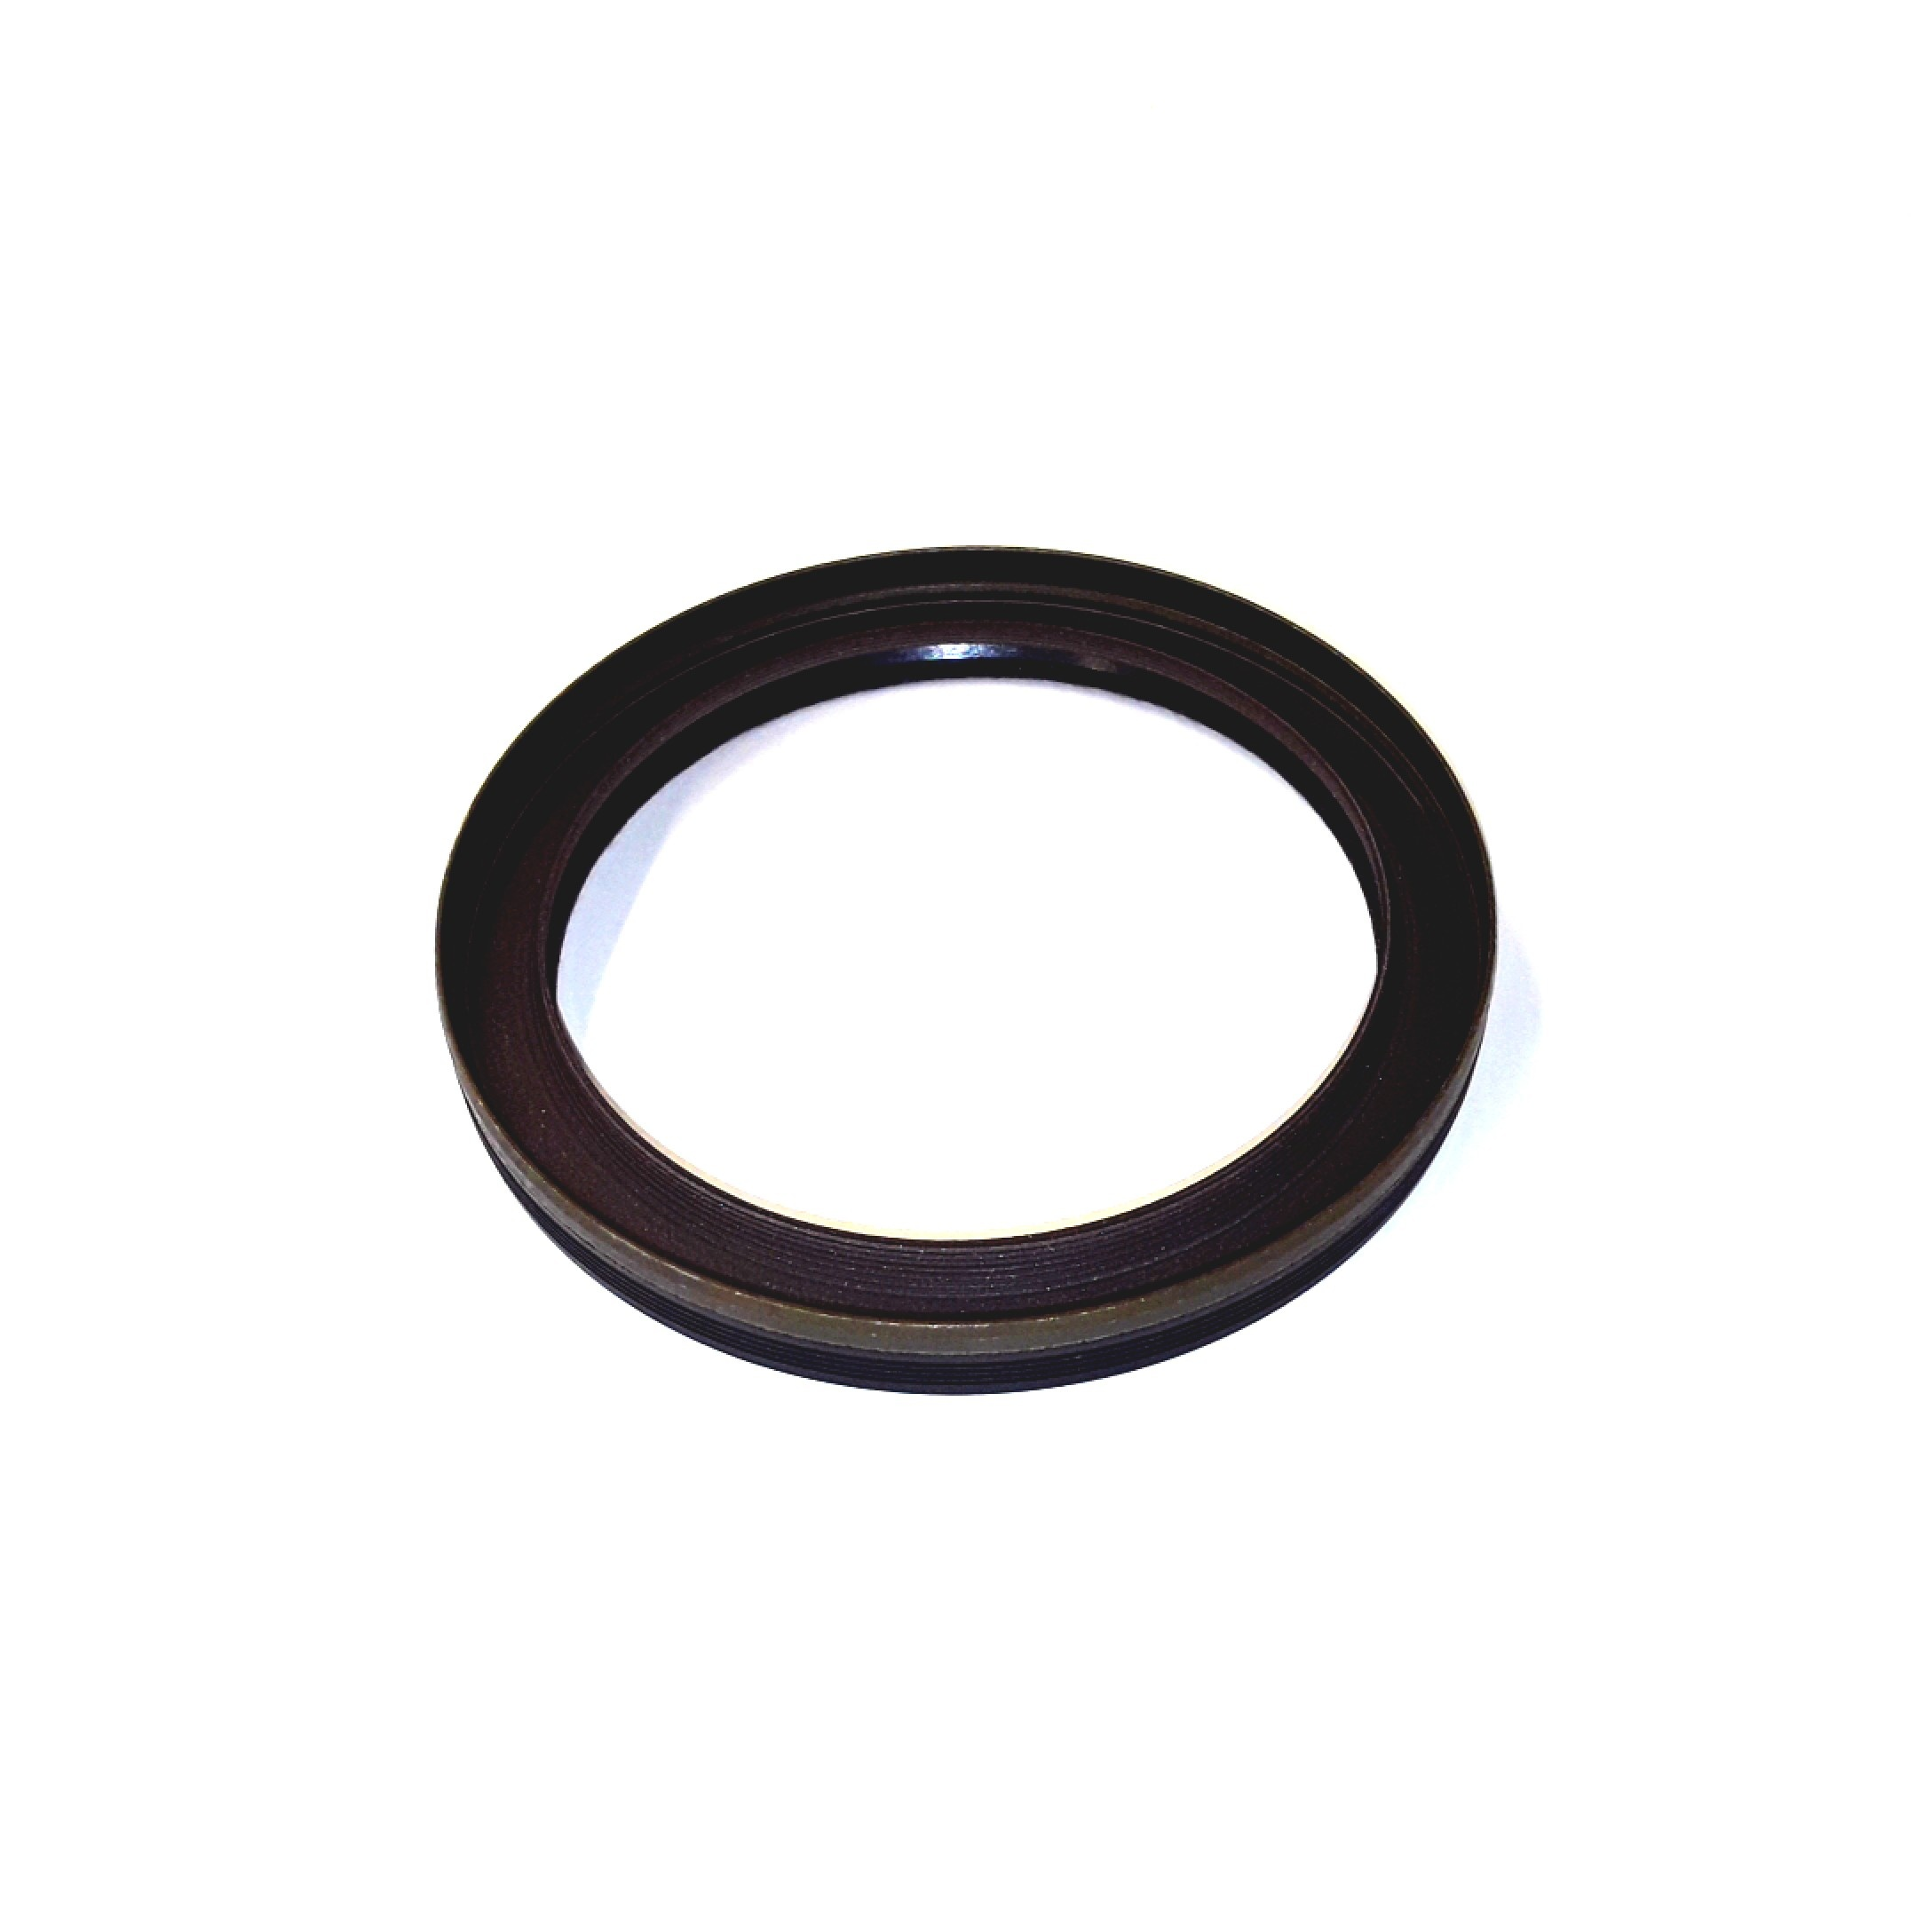 070103051a Audi Seal Oil Seal Ttrs Audi Jim Ellis